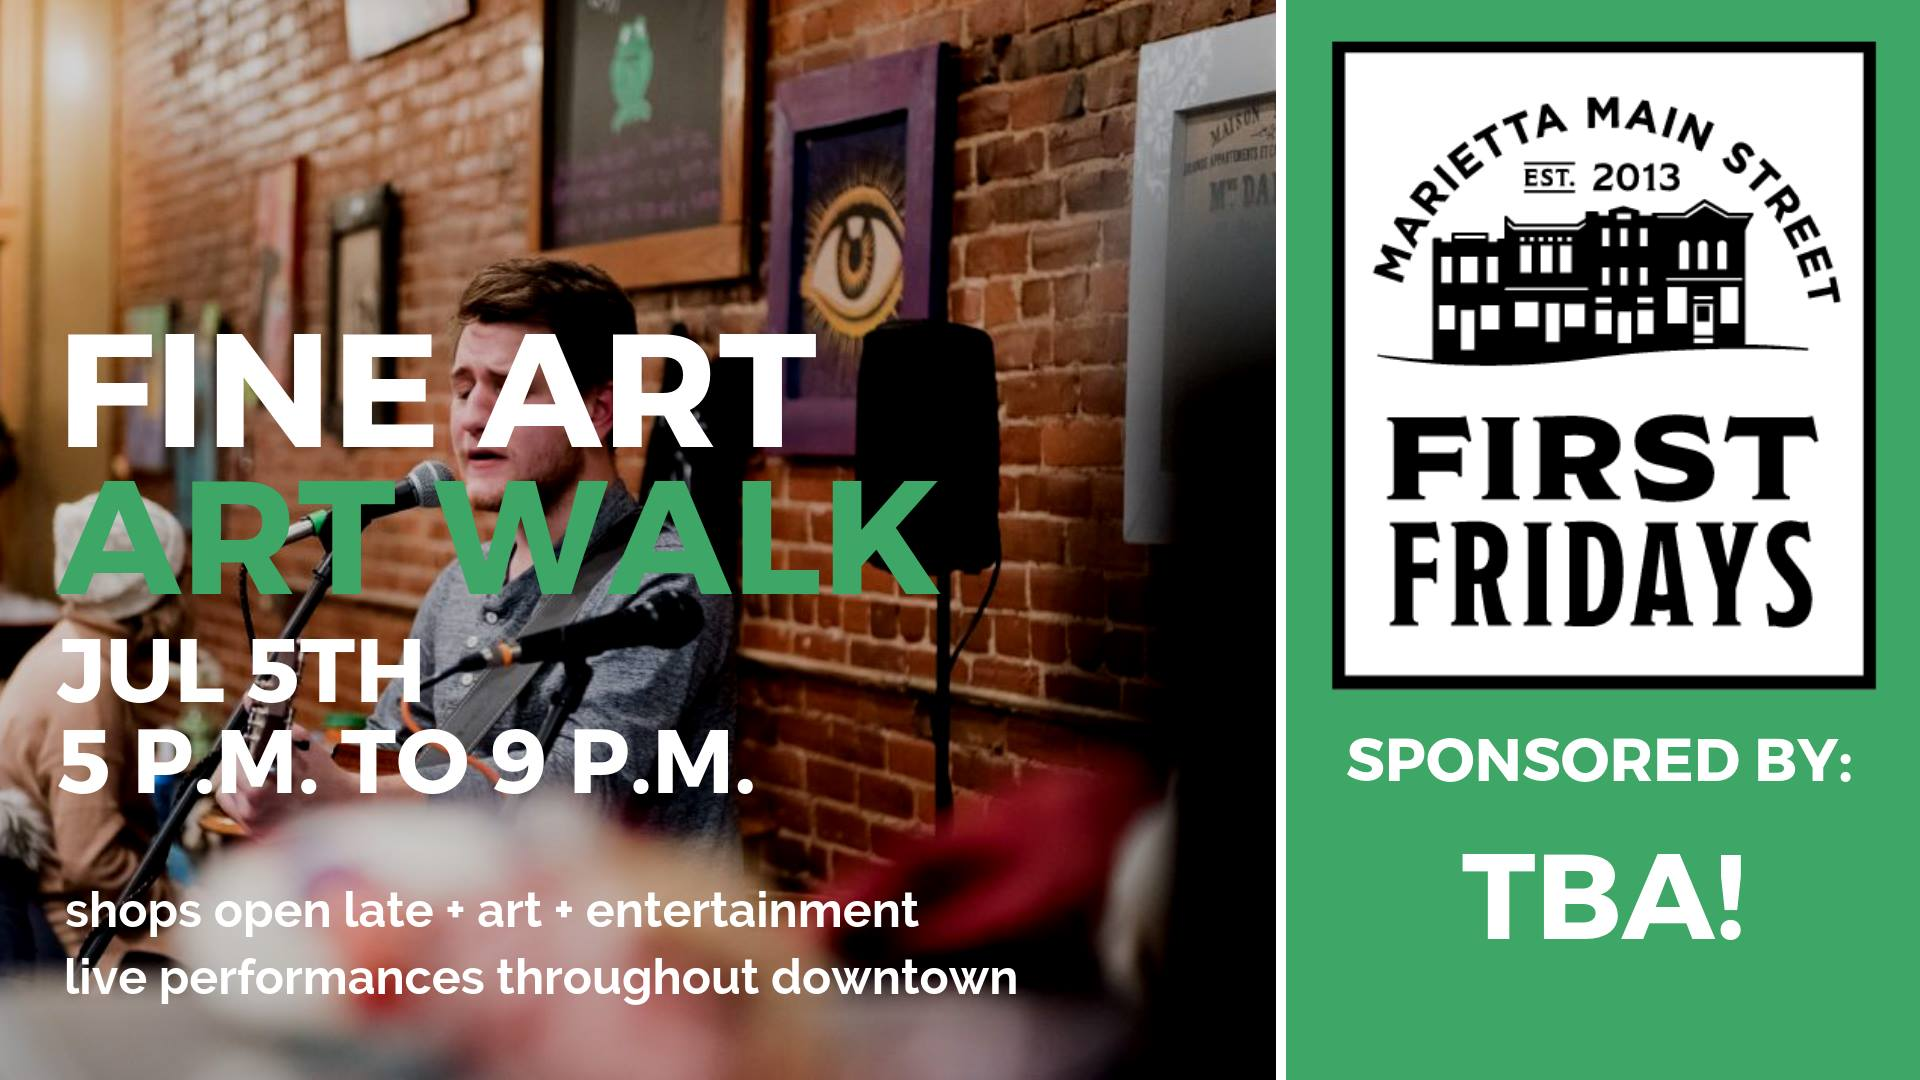 First Friday: Fine Art Walk